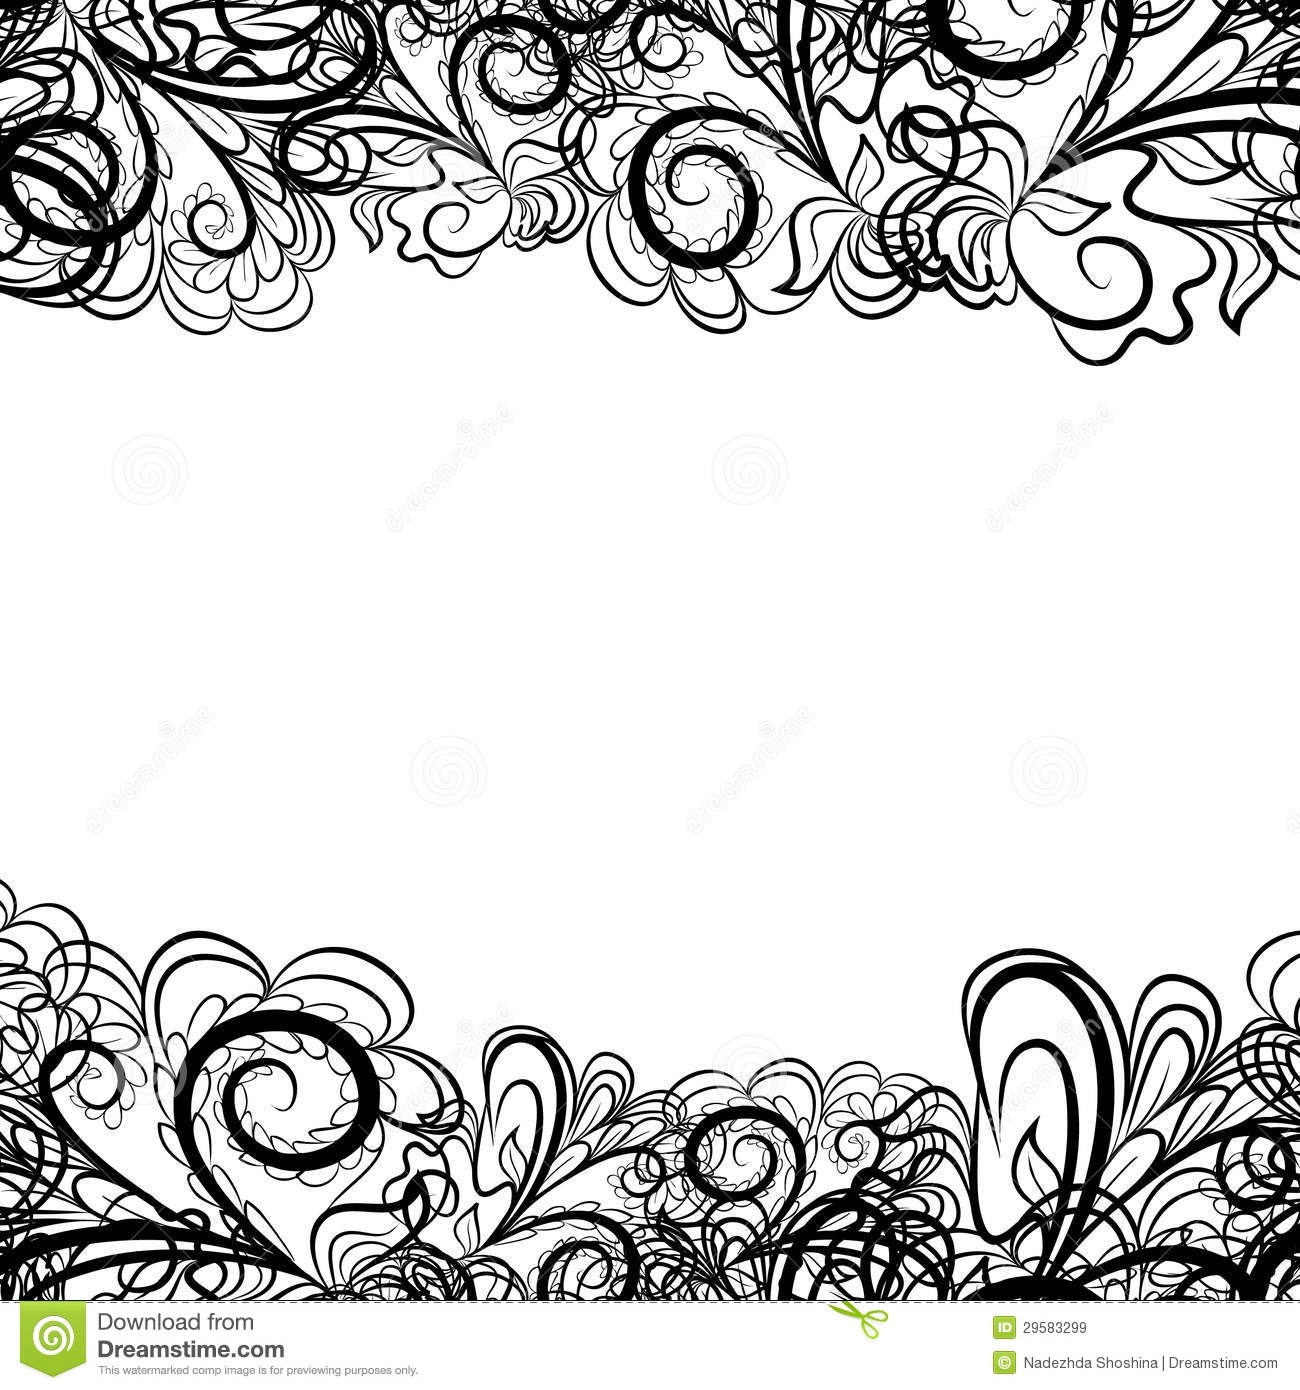 White Lace Border Clipartblack Lace Border Royalty Free Stock Images